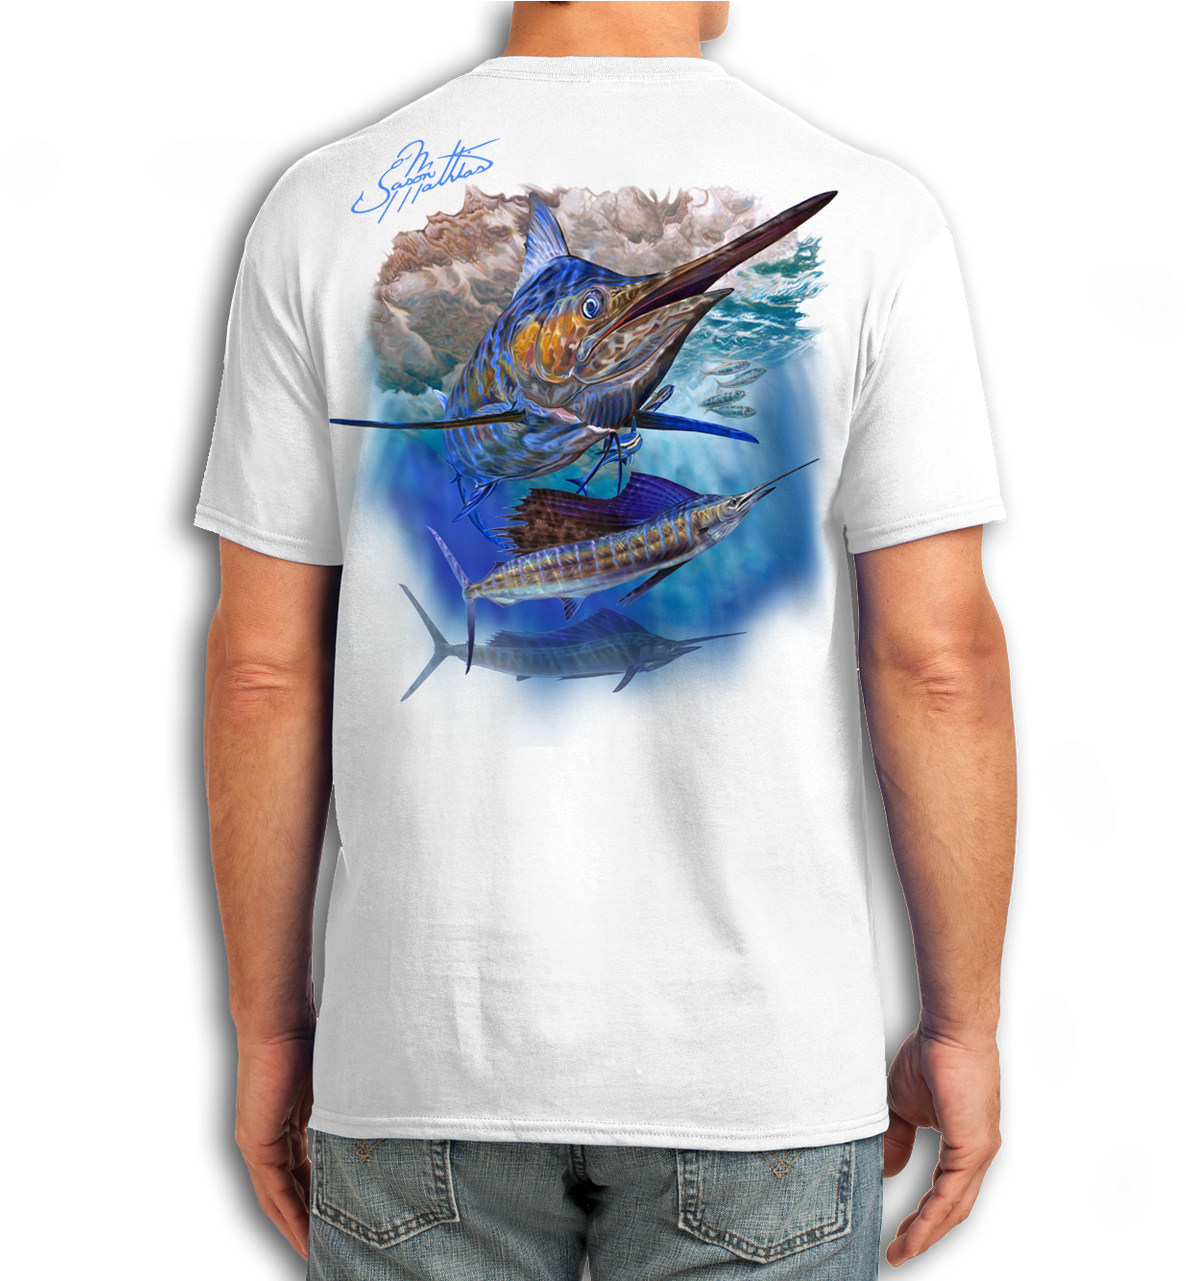 Download Blue Marlin Sailfish Cotton Feel Tech PNG Image with No